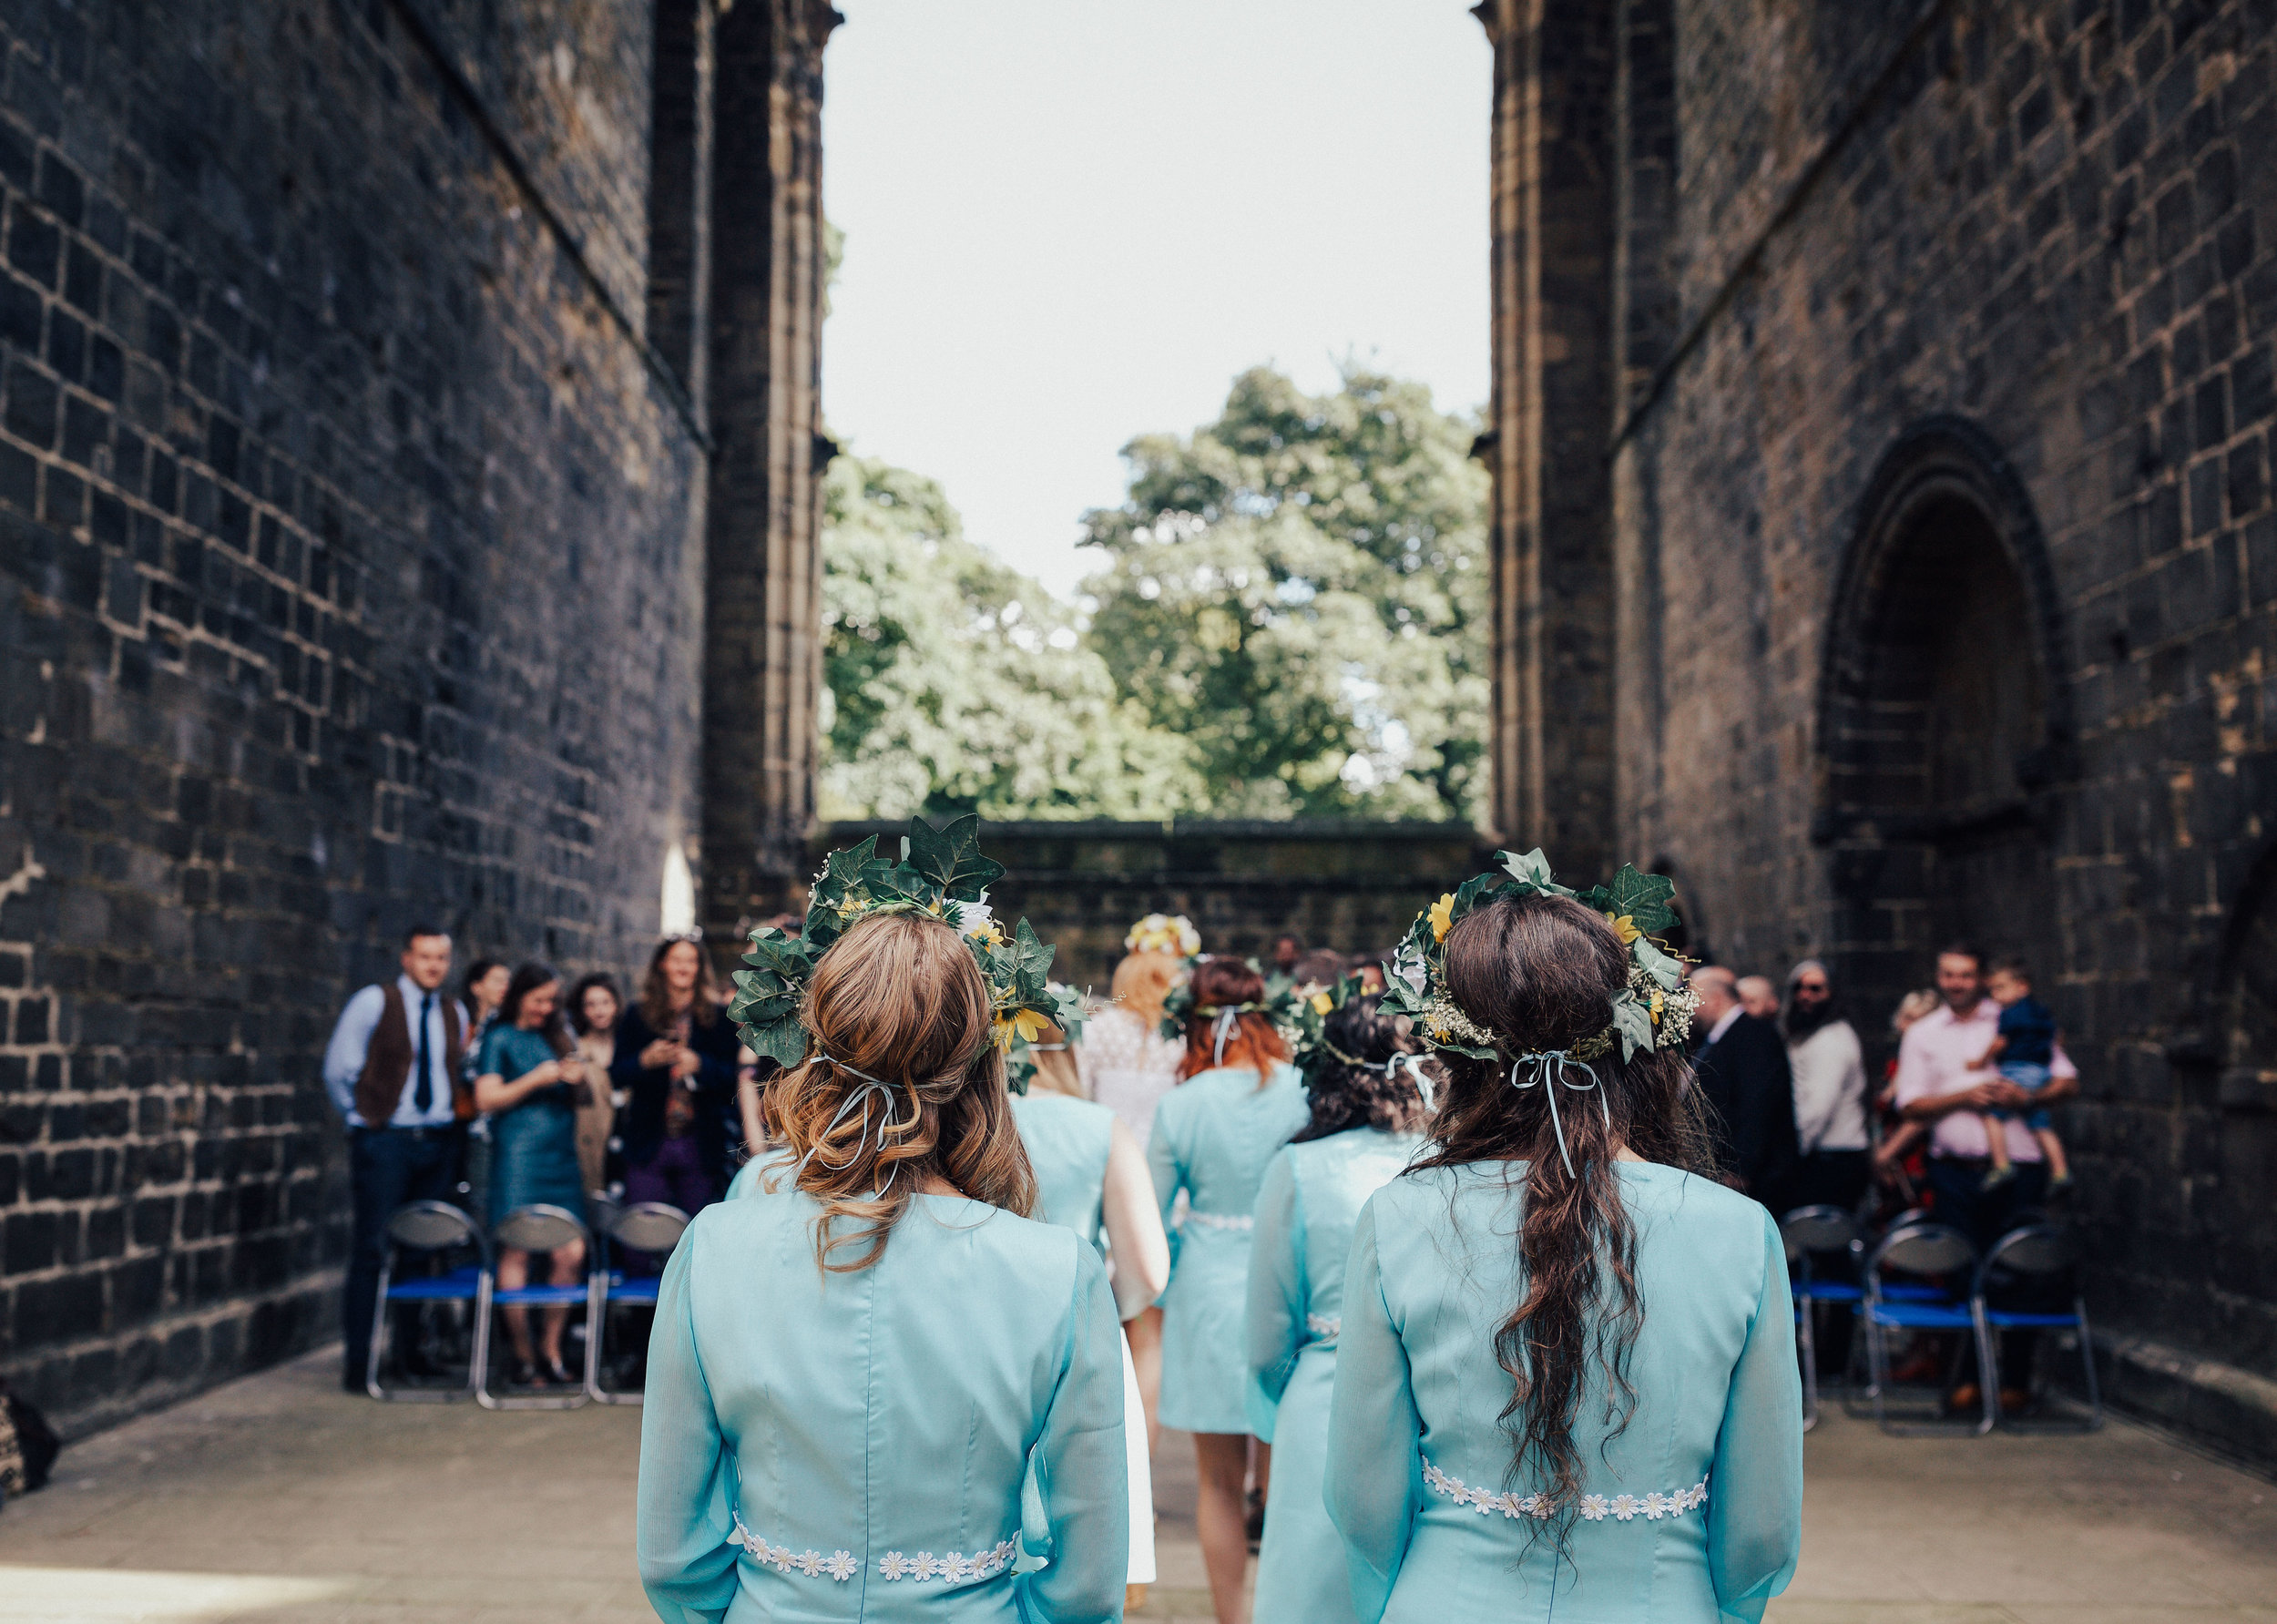 ALTERNATIVE_WEDDING_PHOTOGRAPHY_LEEDS_UK_PJ_PHILLIPS_PHOTOGRAPHY_56.jpg